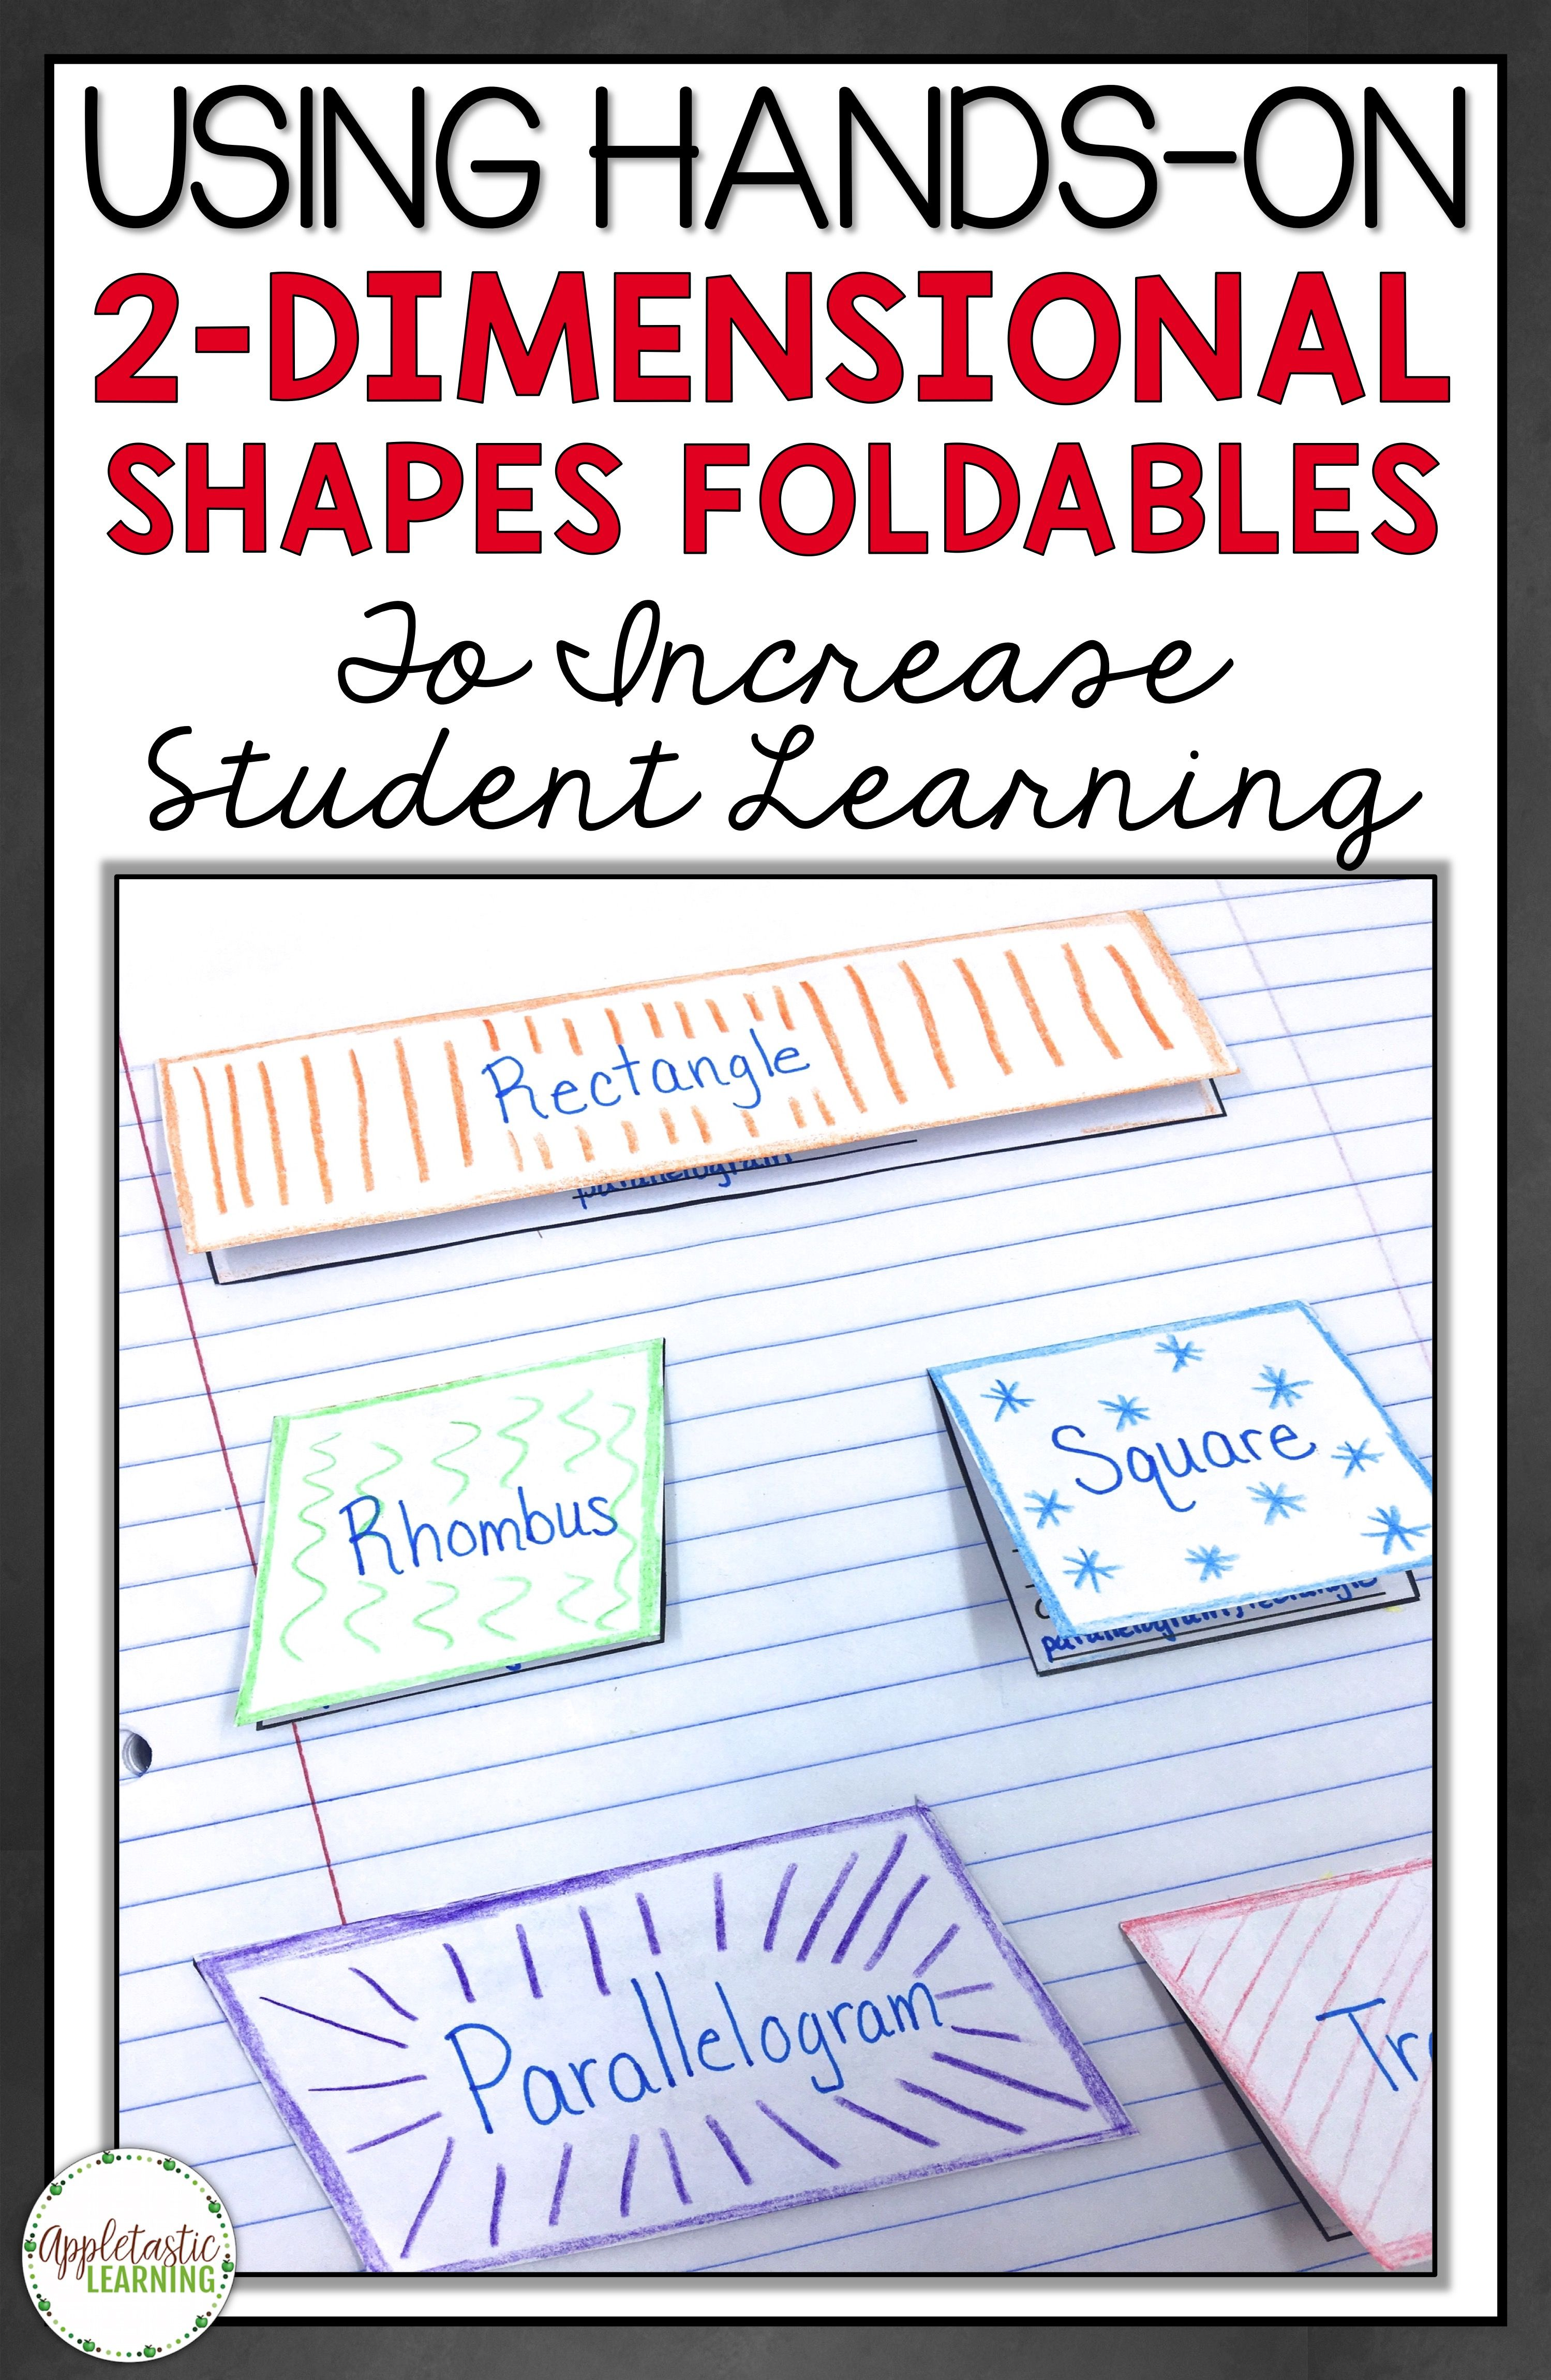 2-D Shapes Foldables and 2 Dimensional Shapes Foldables are fun for elementary students in 3rd grade, 4th grade, 5th grade, and 6th grade! Instead of a 2-dimensional shape worksheet, try these interactive notebook math foldable templates for kids. Great math activities and geometry ideas for 2-D Shape learning. Includes mini anchor charts for math journals!